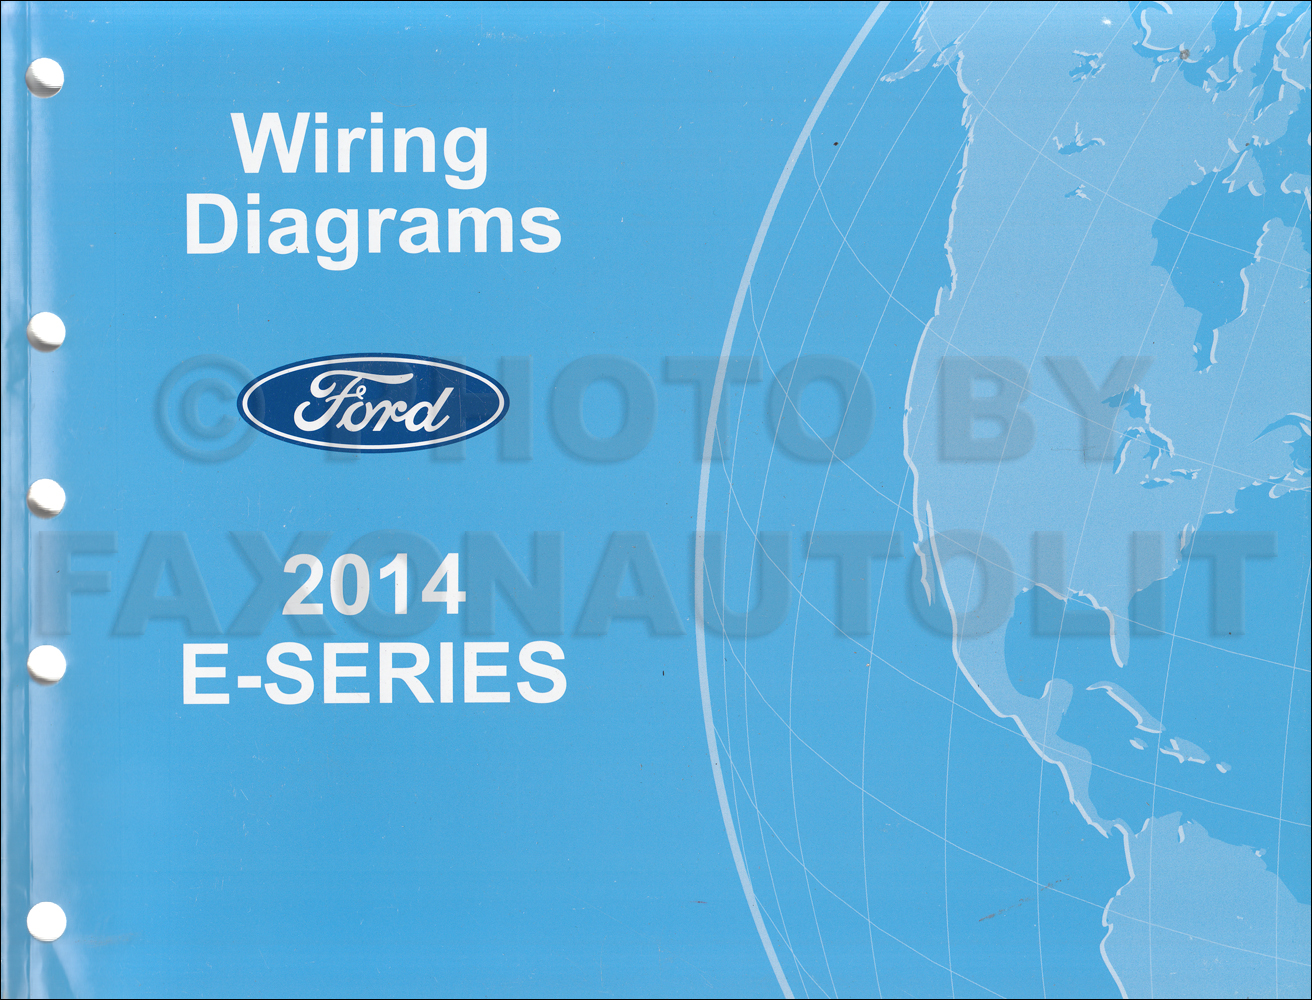 Ford E 150 Wiring Diagram Schema Diagrams 89 E150 Van 2014 Econoline Manual Original E250 92